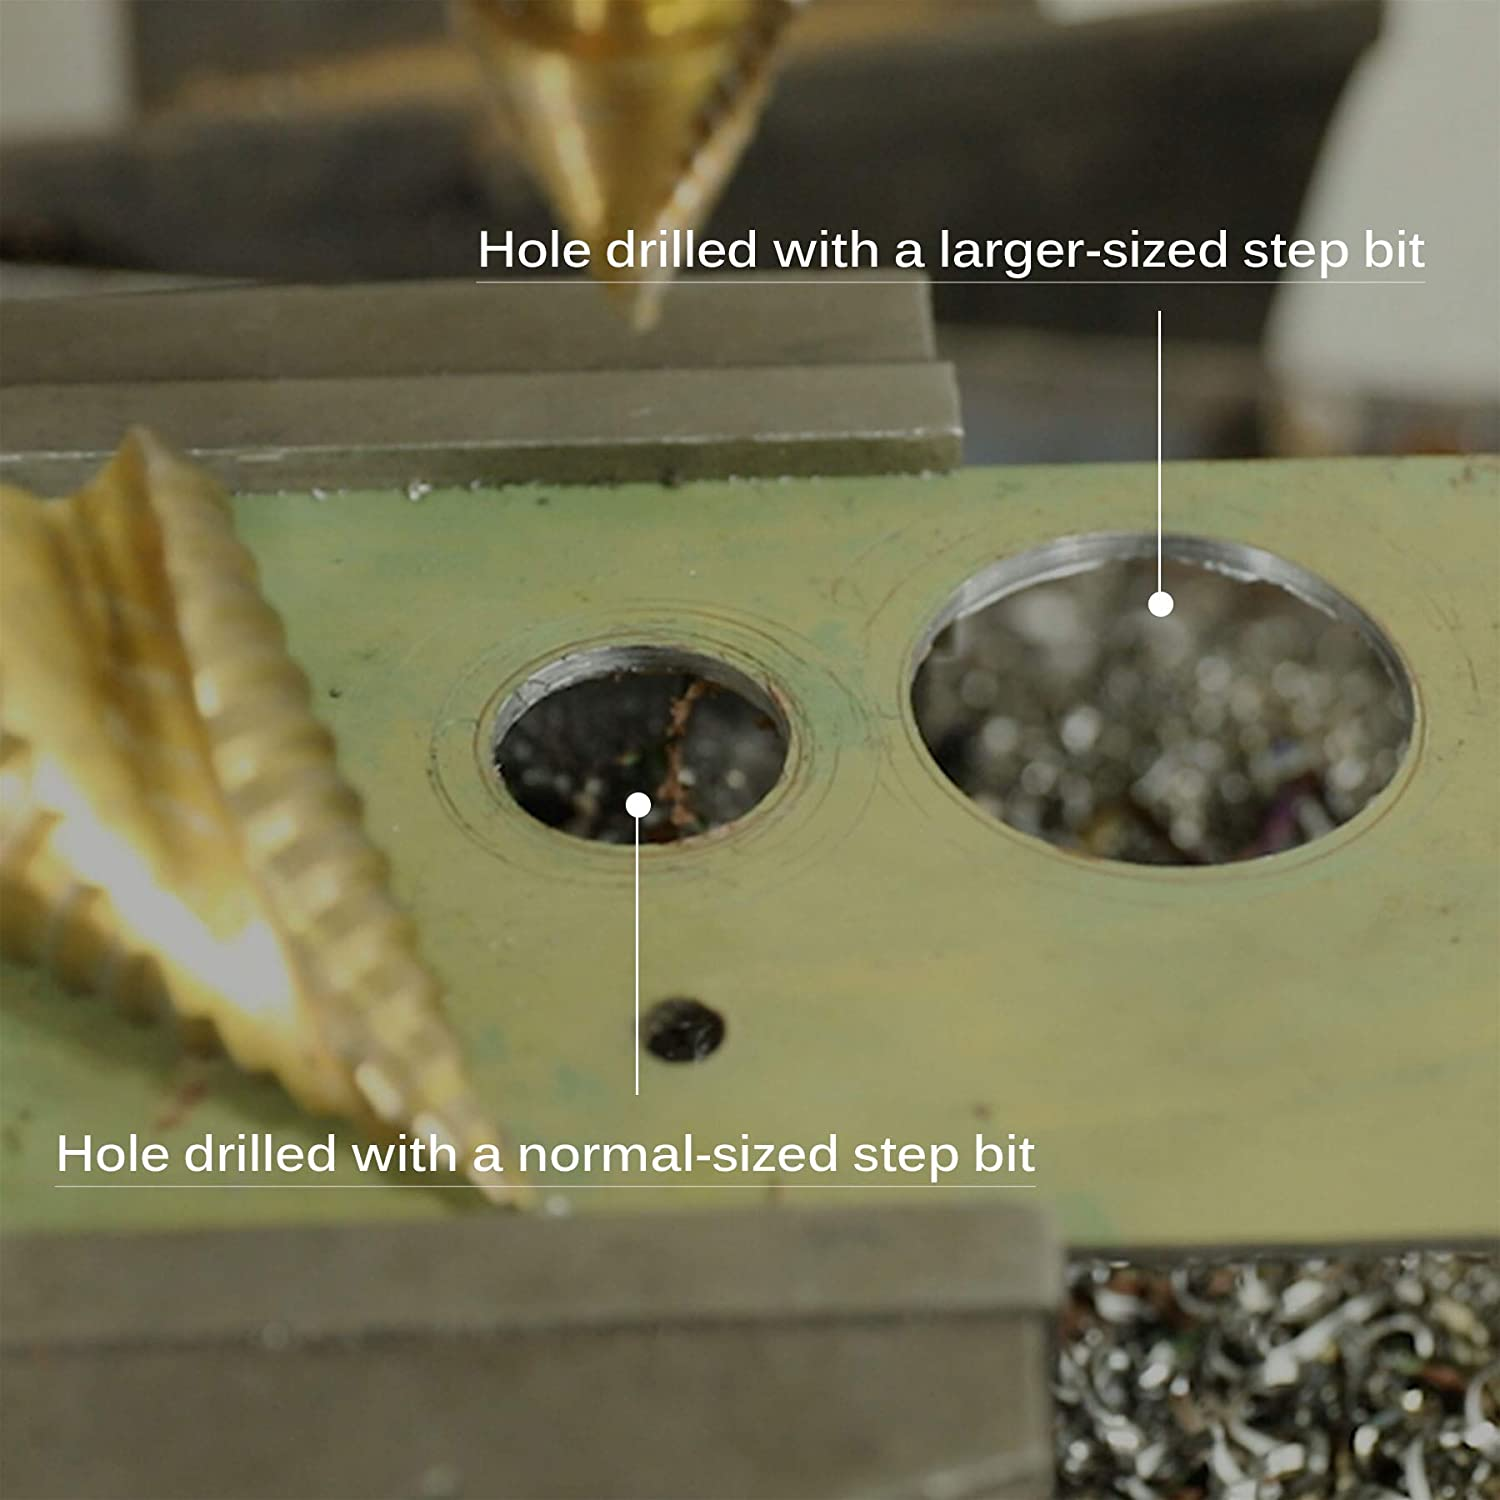 CO-Z Large HSS Spiral Groove Step Drill Bit Big Multiple Hole Stepped Up Bit for DIY Lovers 10 Sizes Titanium High Speed Steel 1//4 to 2-3//8 Drill Bit for Sheet Aluminium Metal Wood Hole Drilling